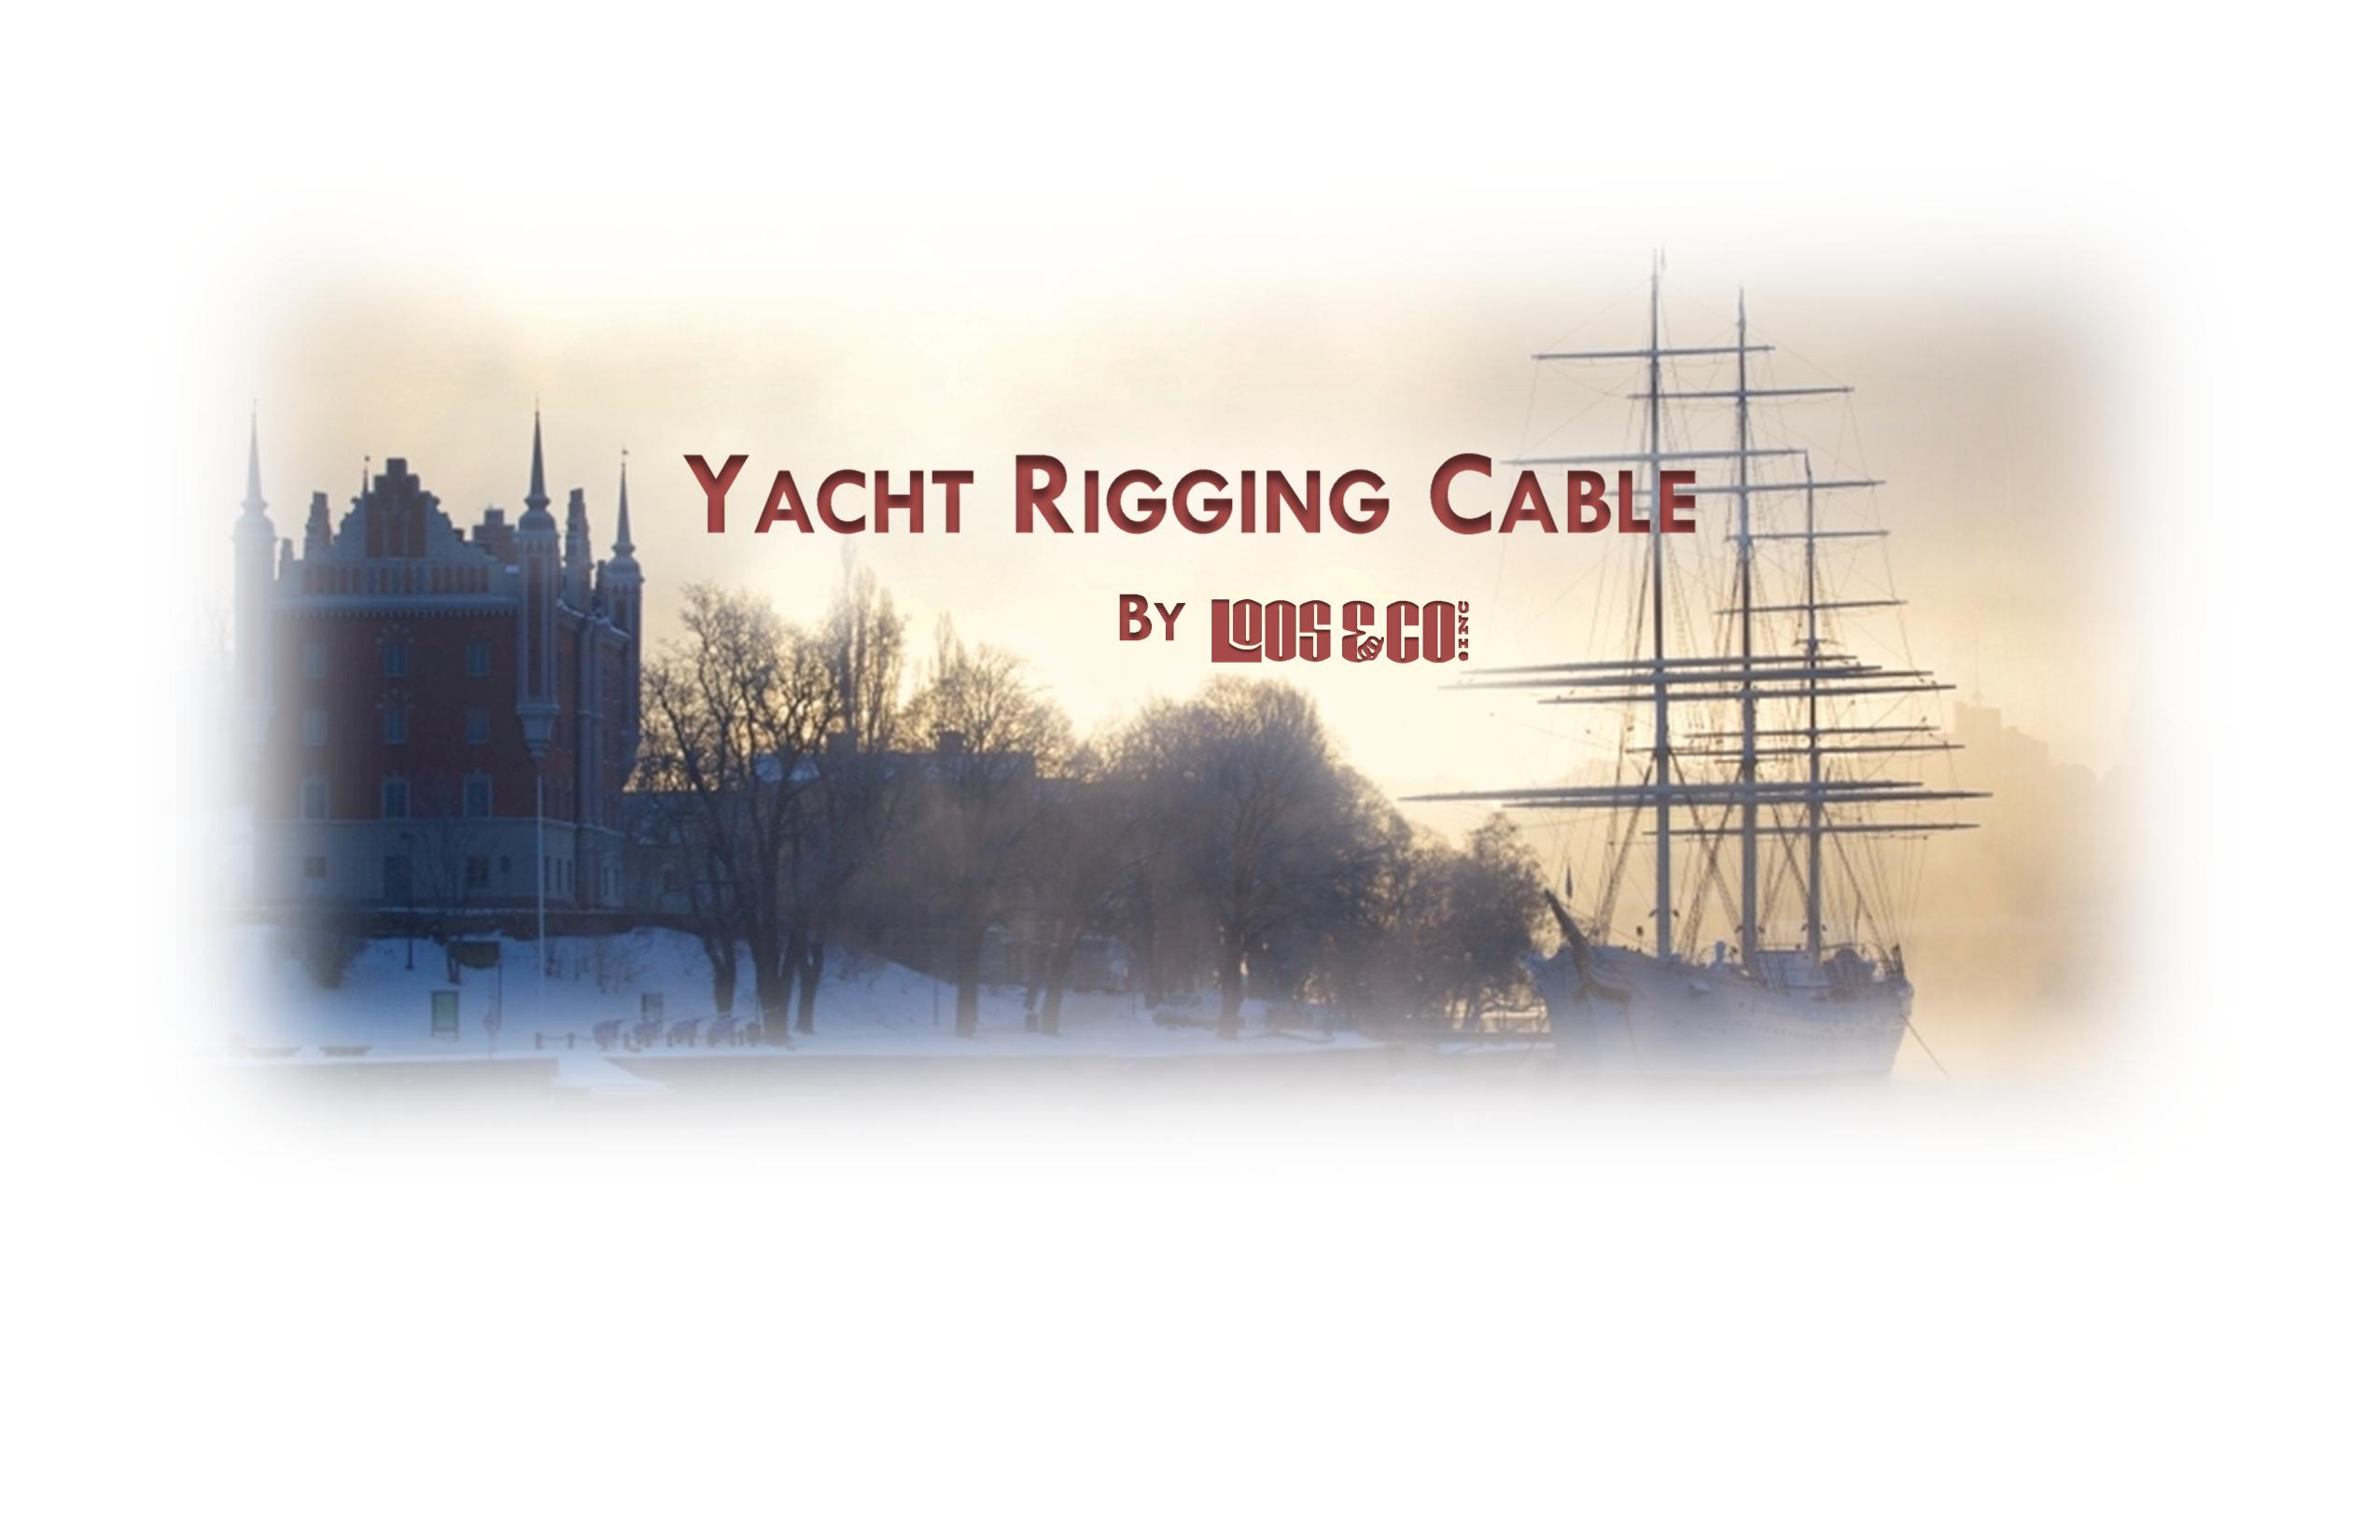 Loos and Company Yacht Rigging Cable